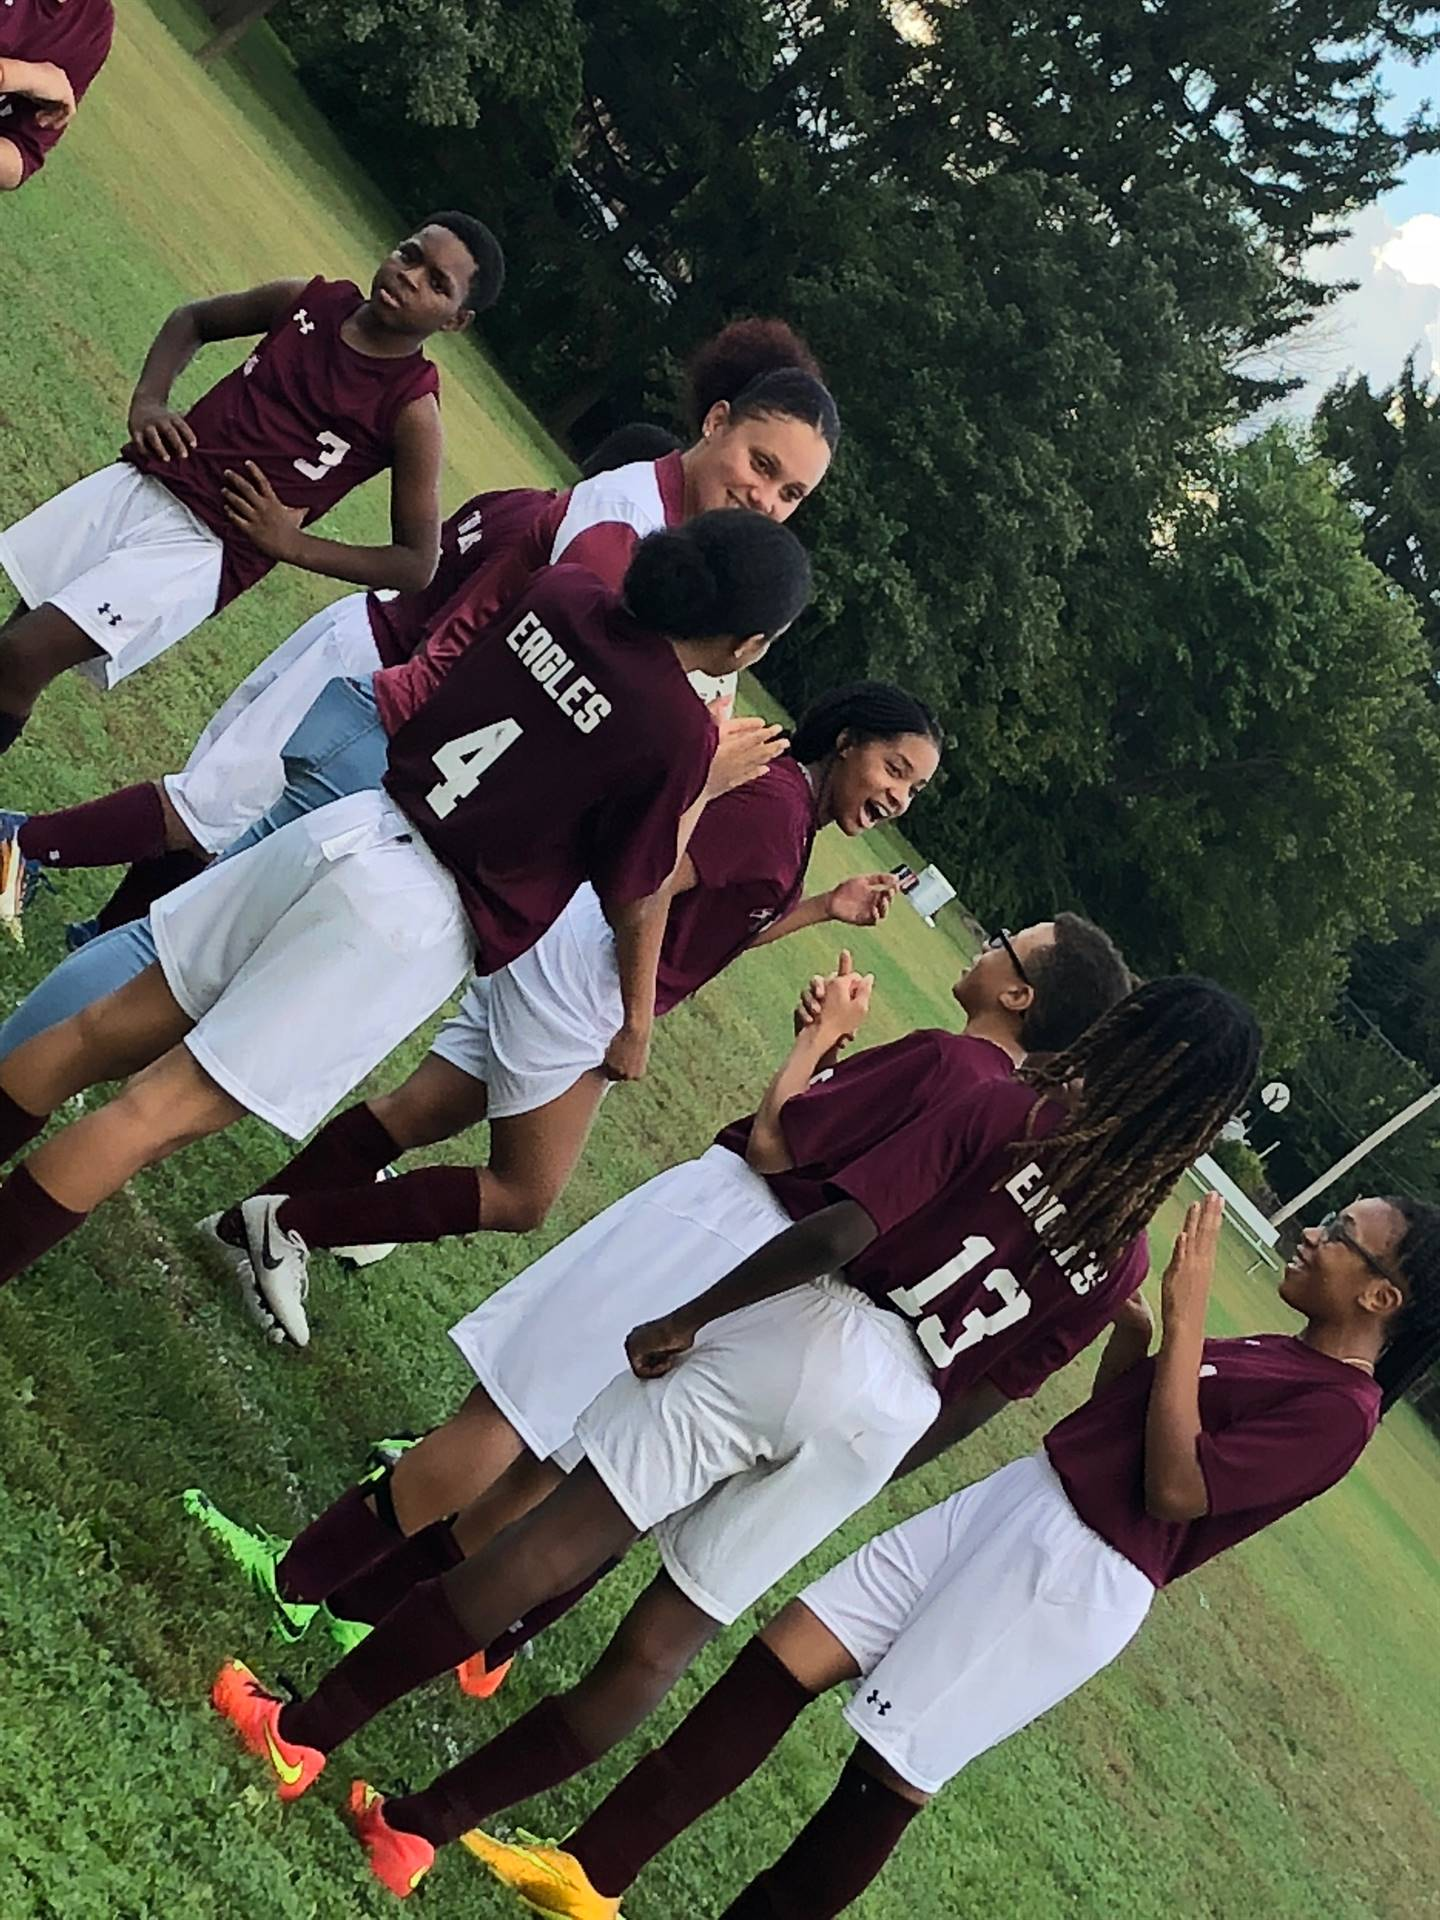 students in soccer uniforms in huddle